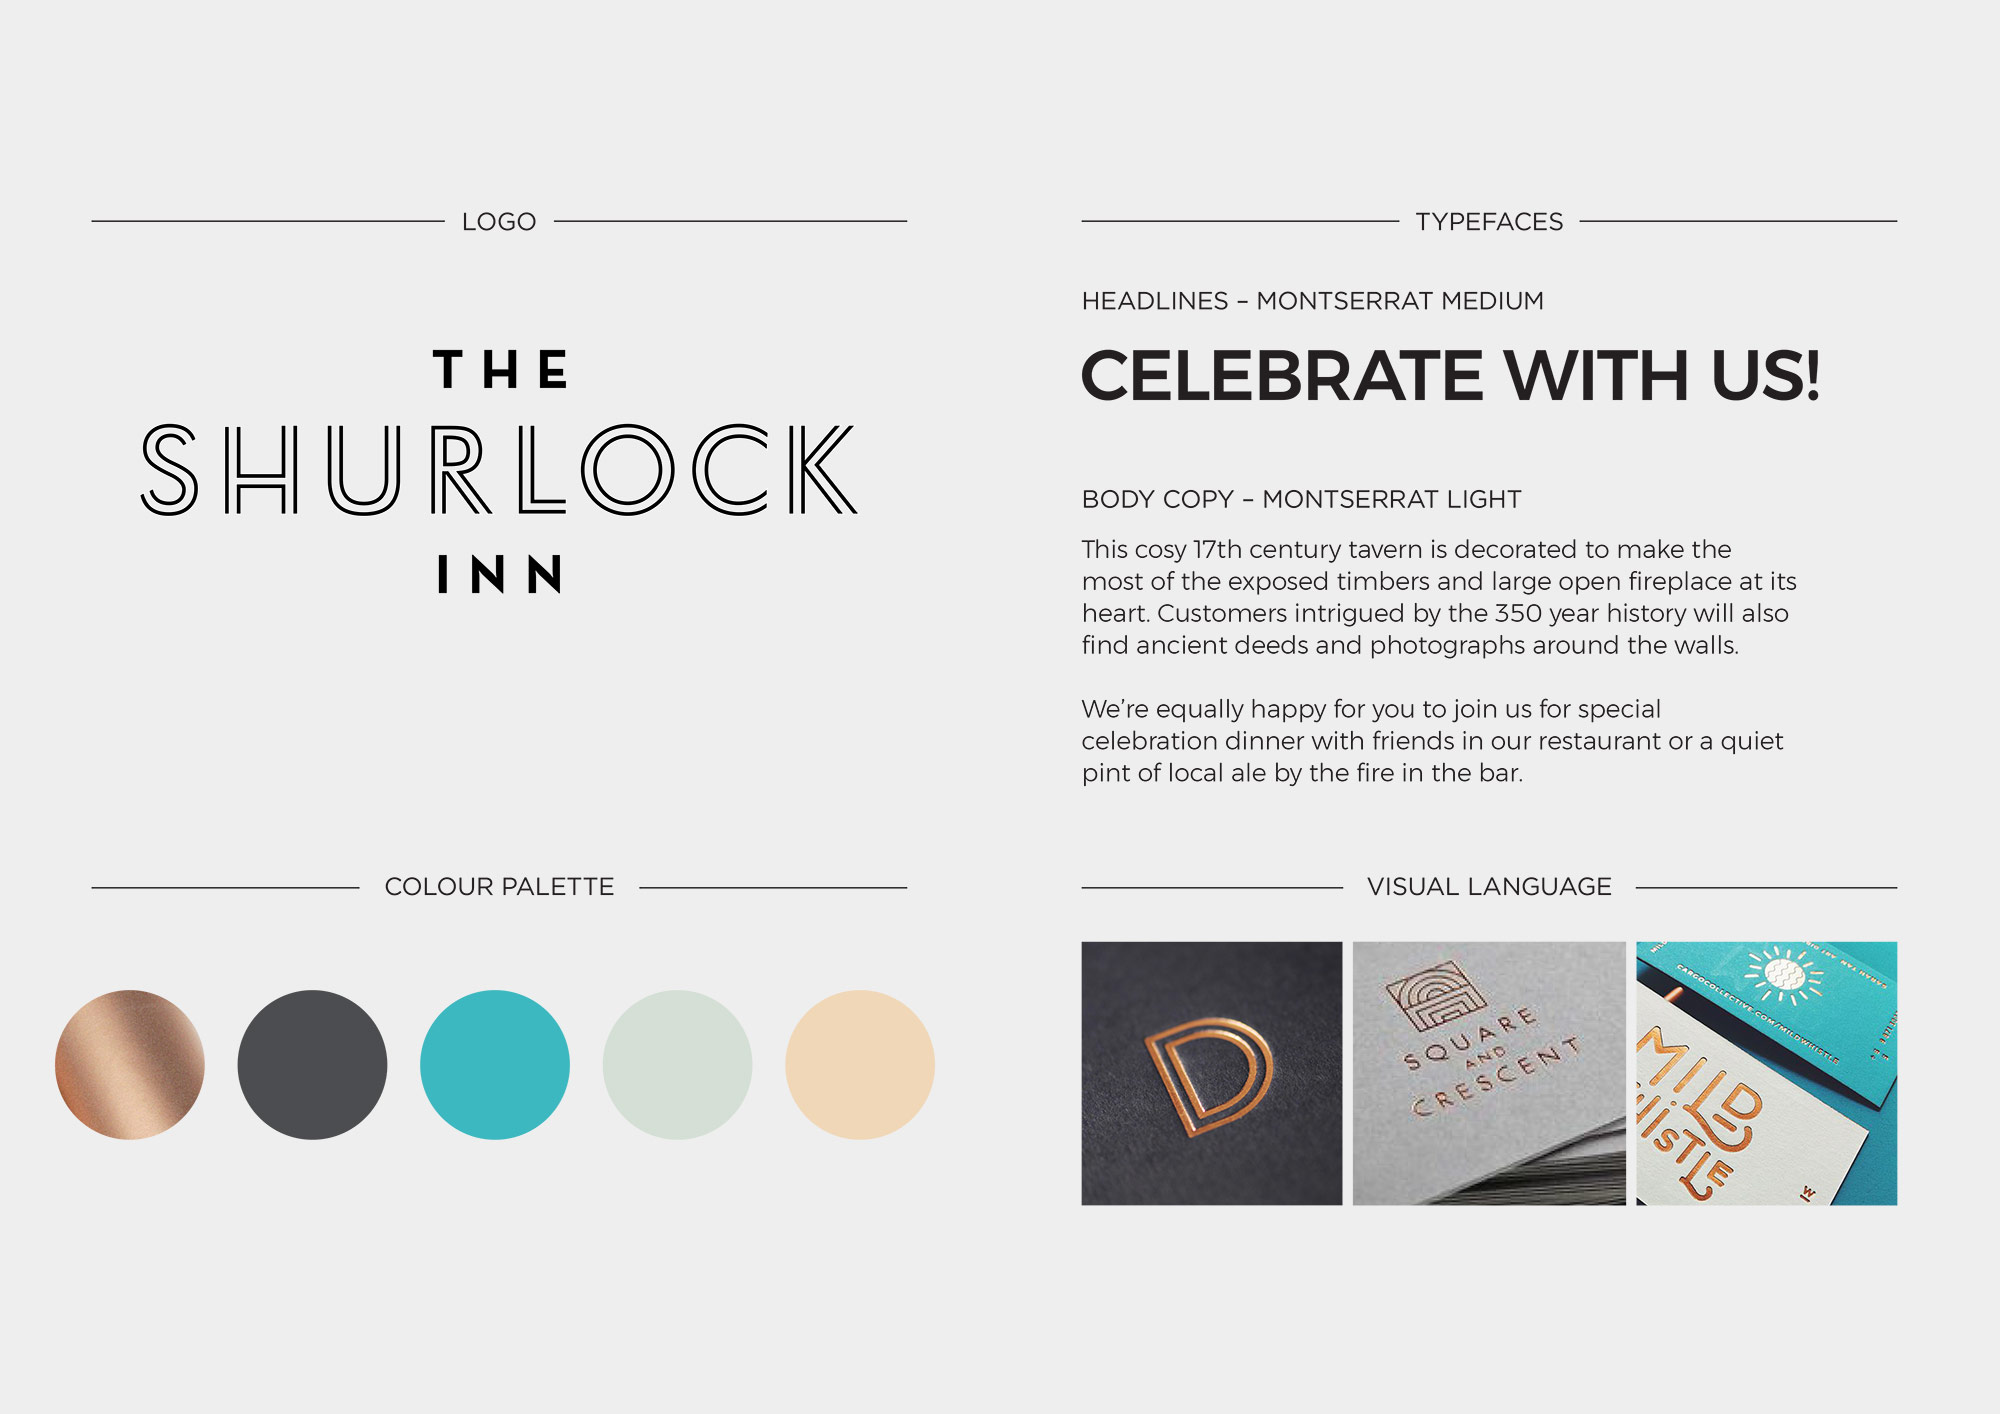 The Shurlock Inn brand assets